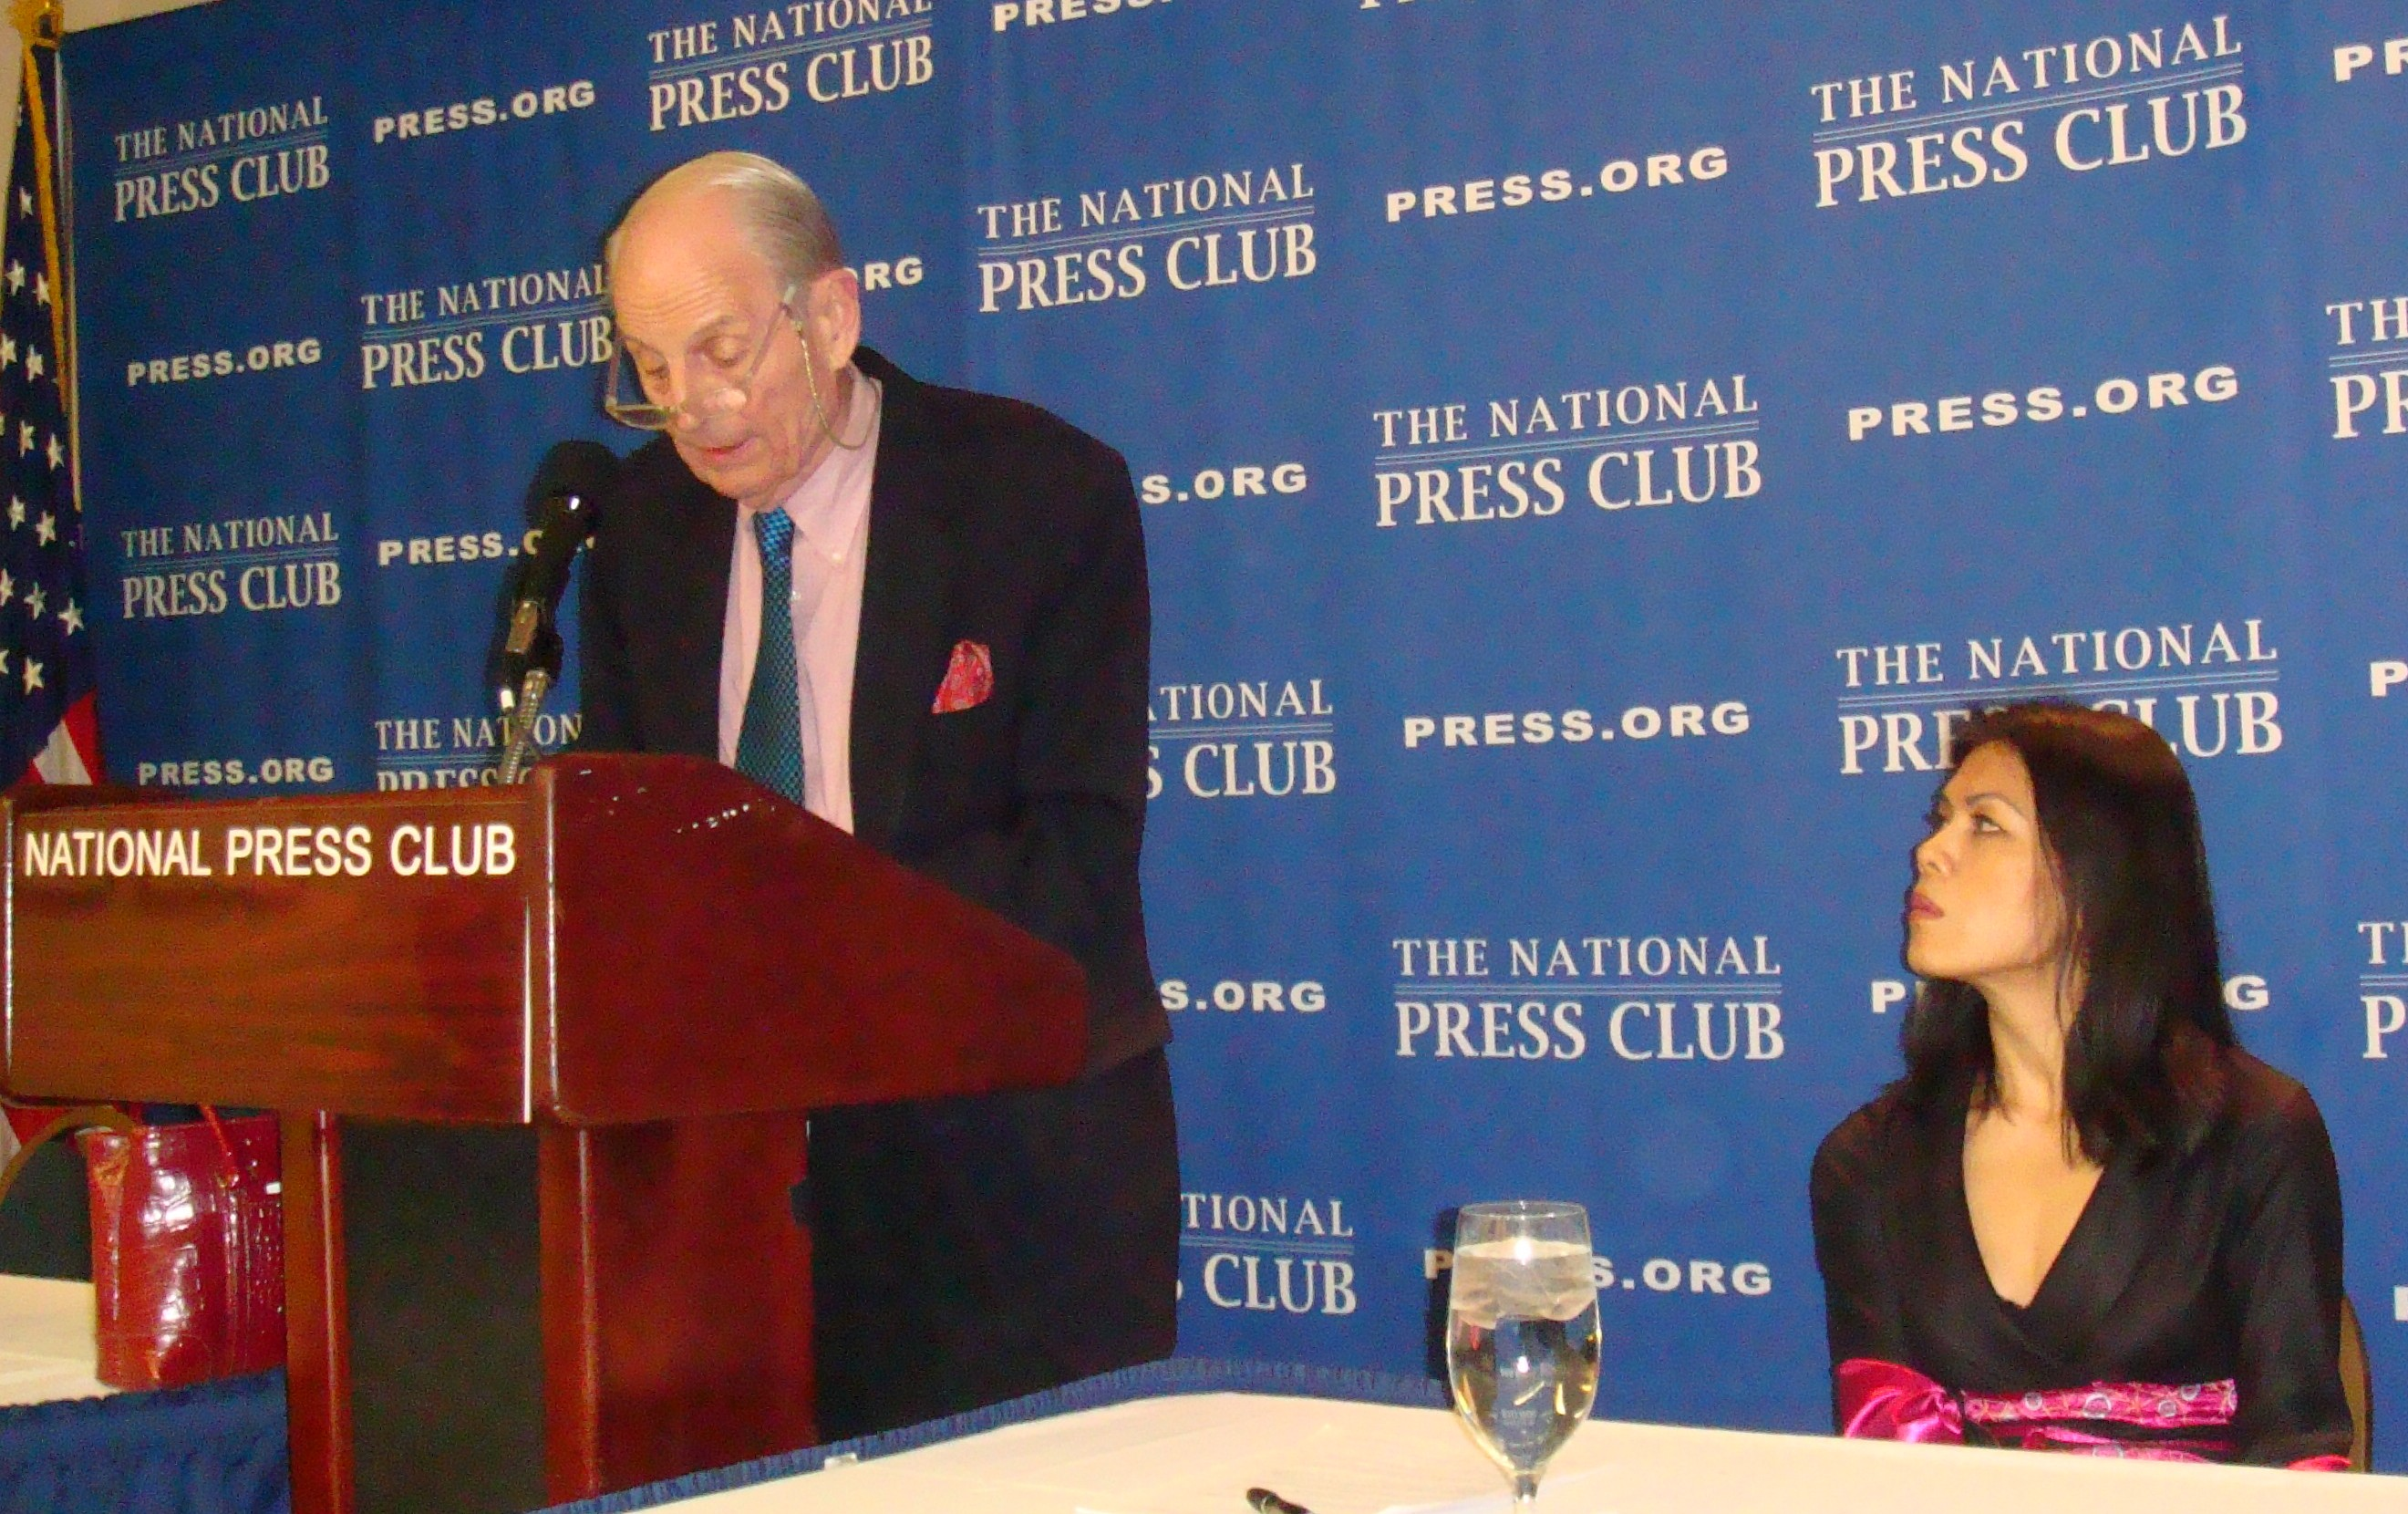 Peter Hickman introducing Newsmaker Theary Seng (National Press Club, 5 March 2010)